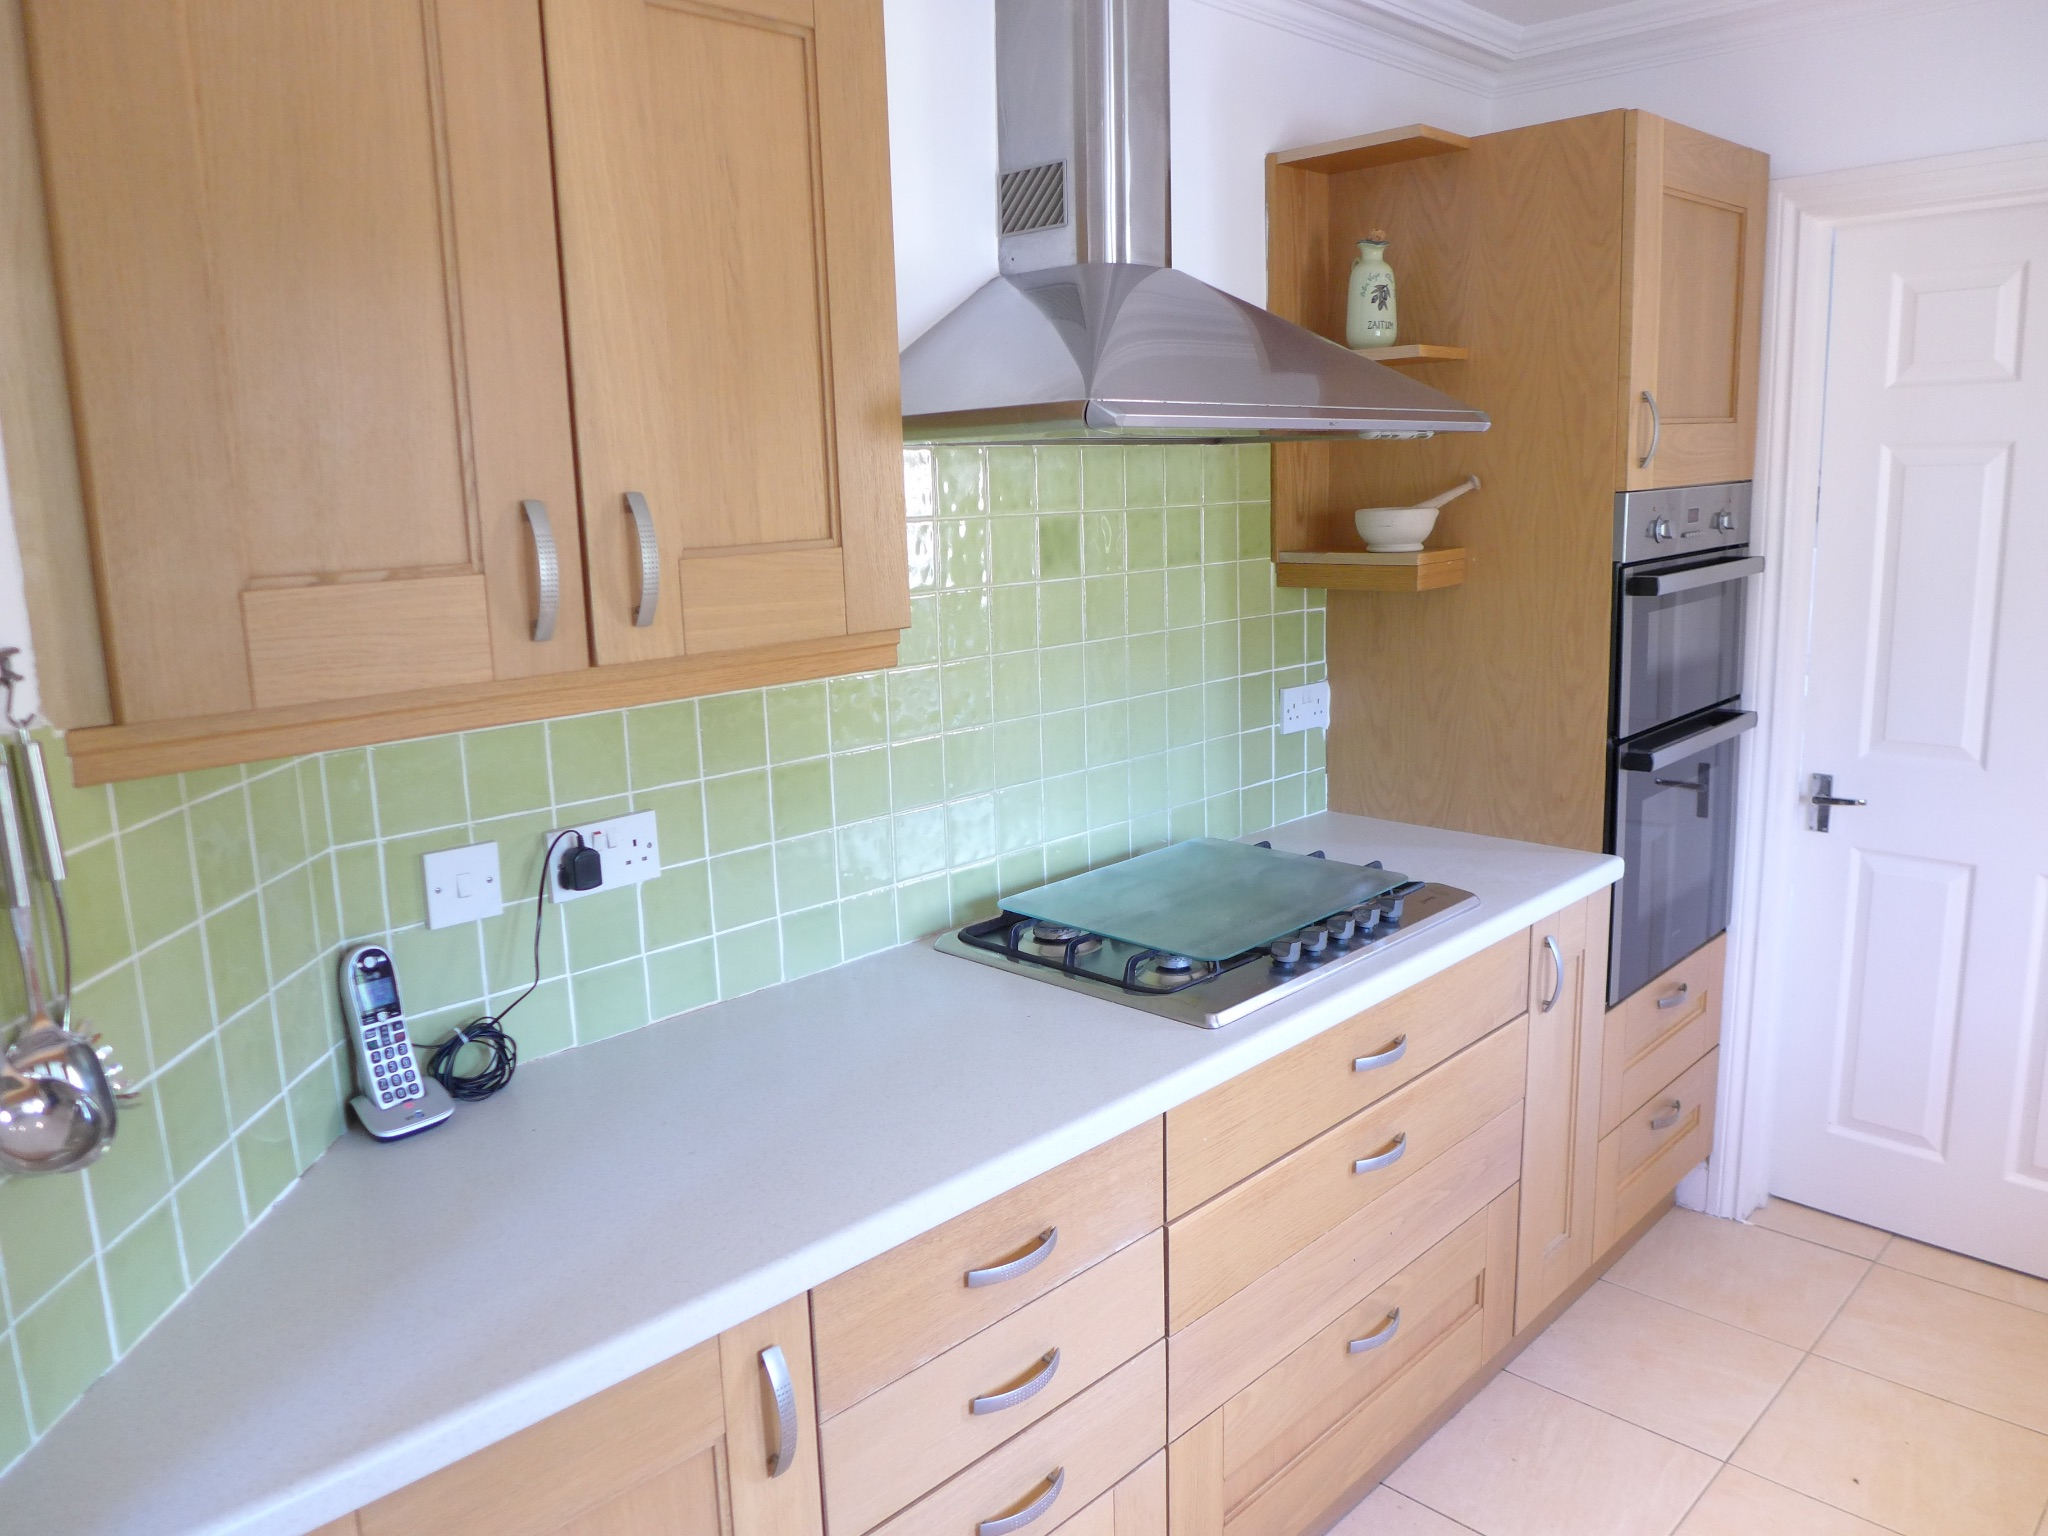 3 bedroom detached house For Sale in Todmorden - Photograph 10.